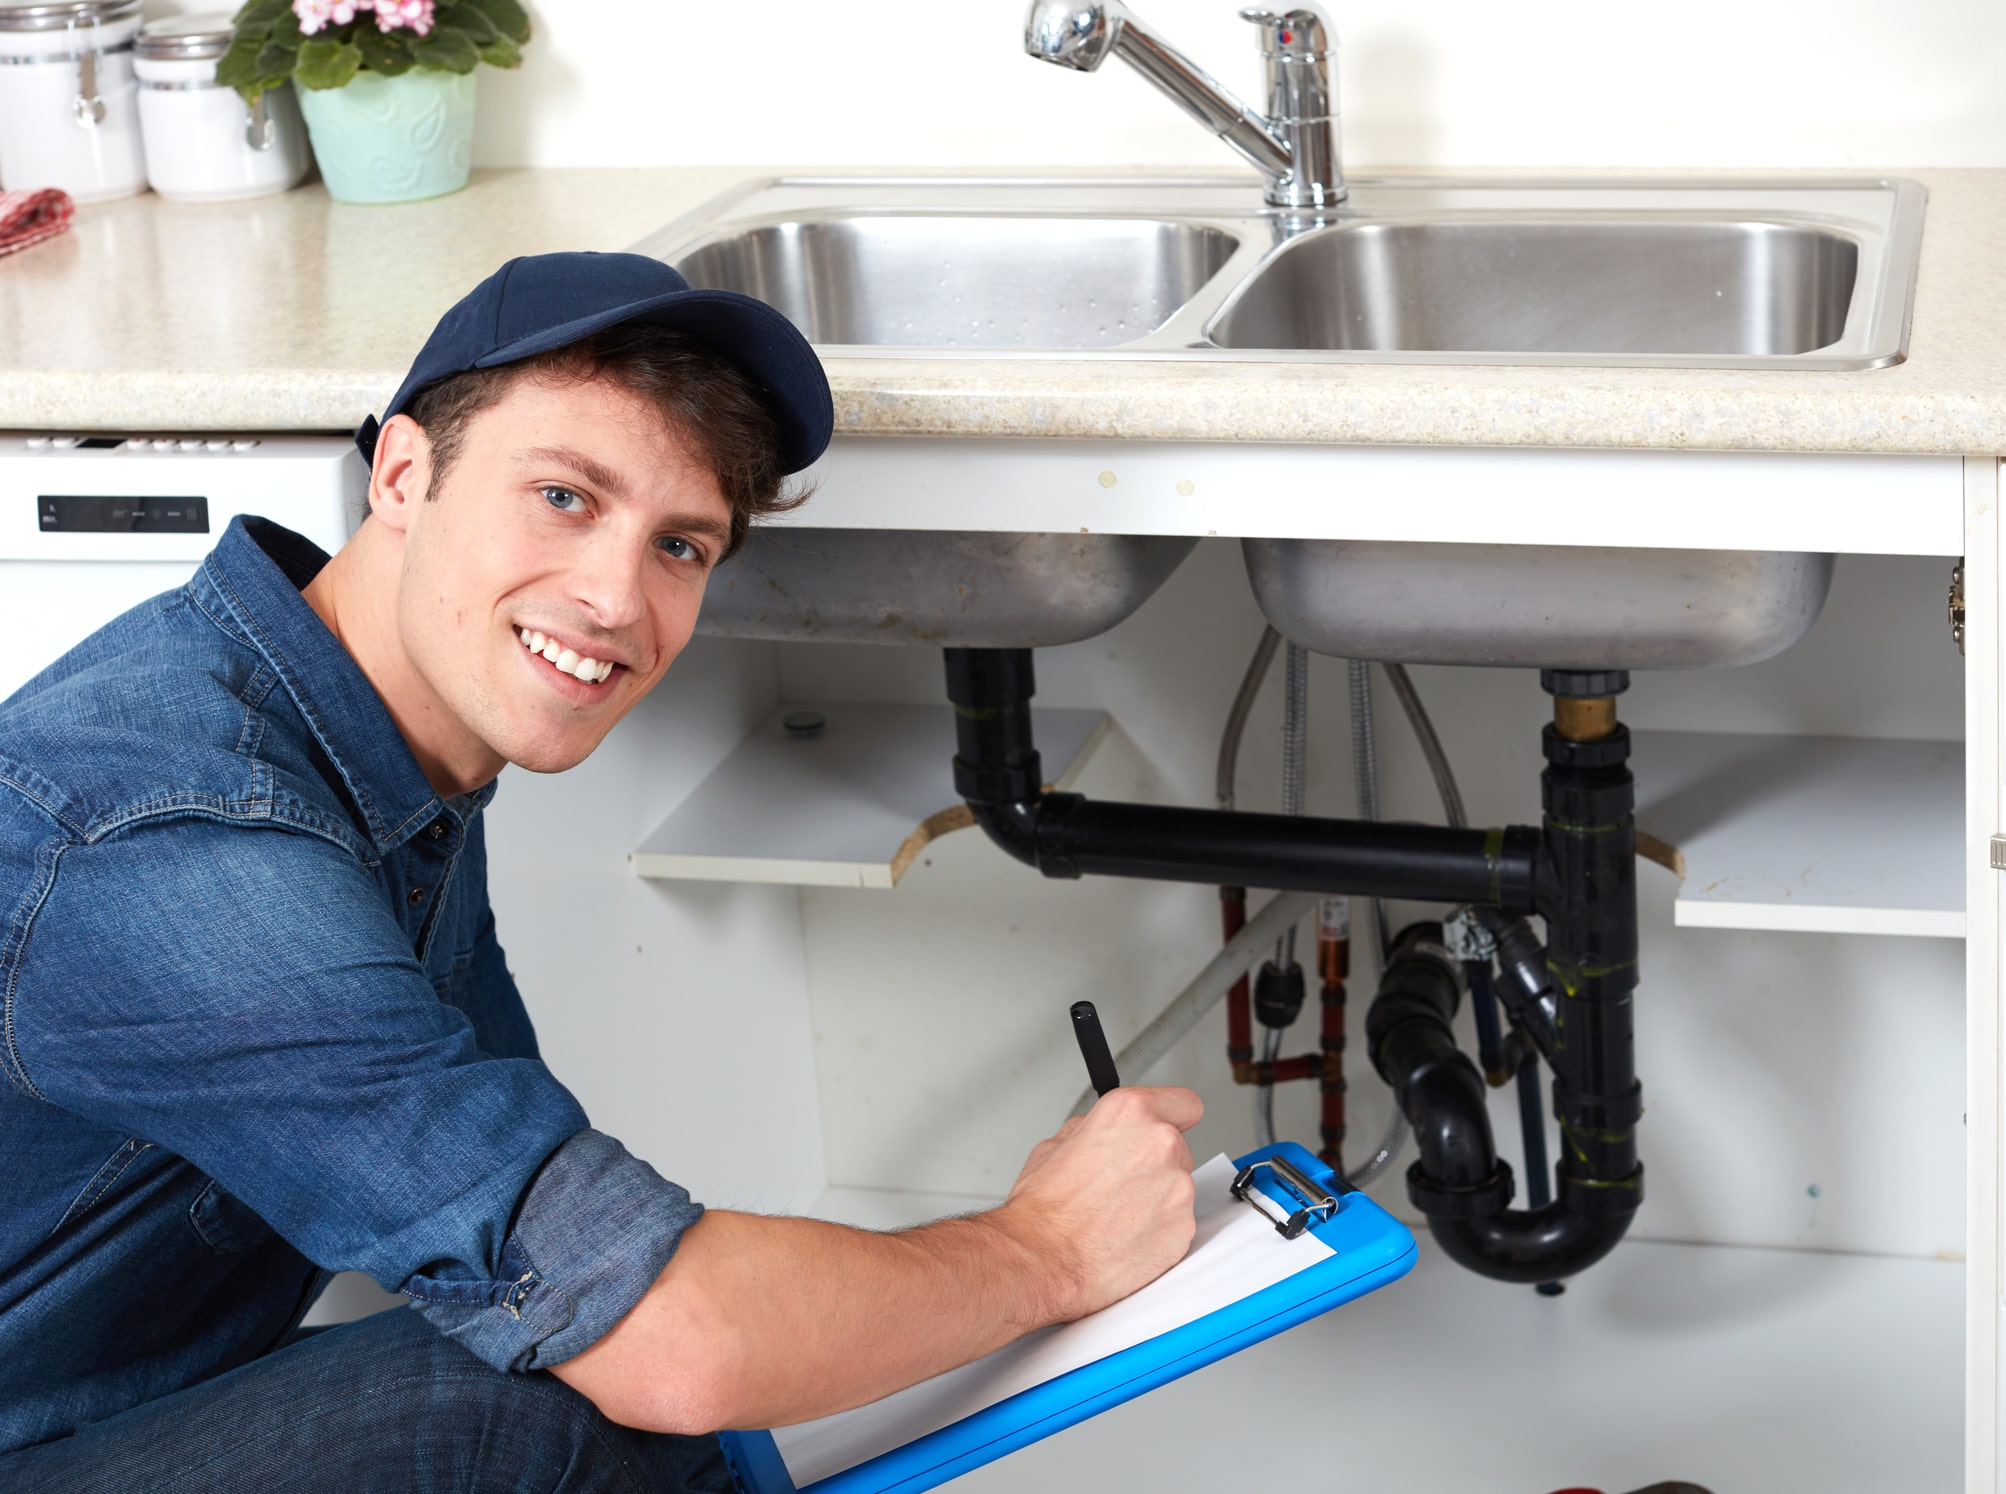 How Can I Learn More About Plumbing?